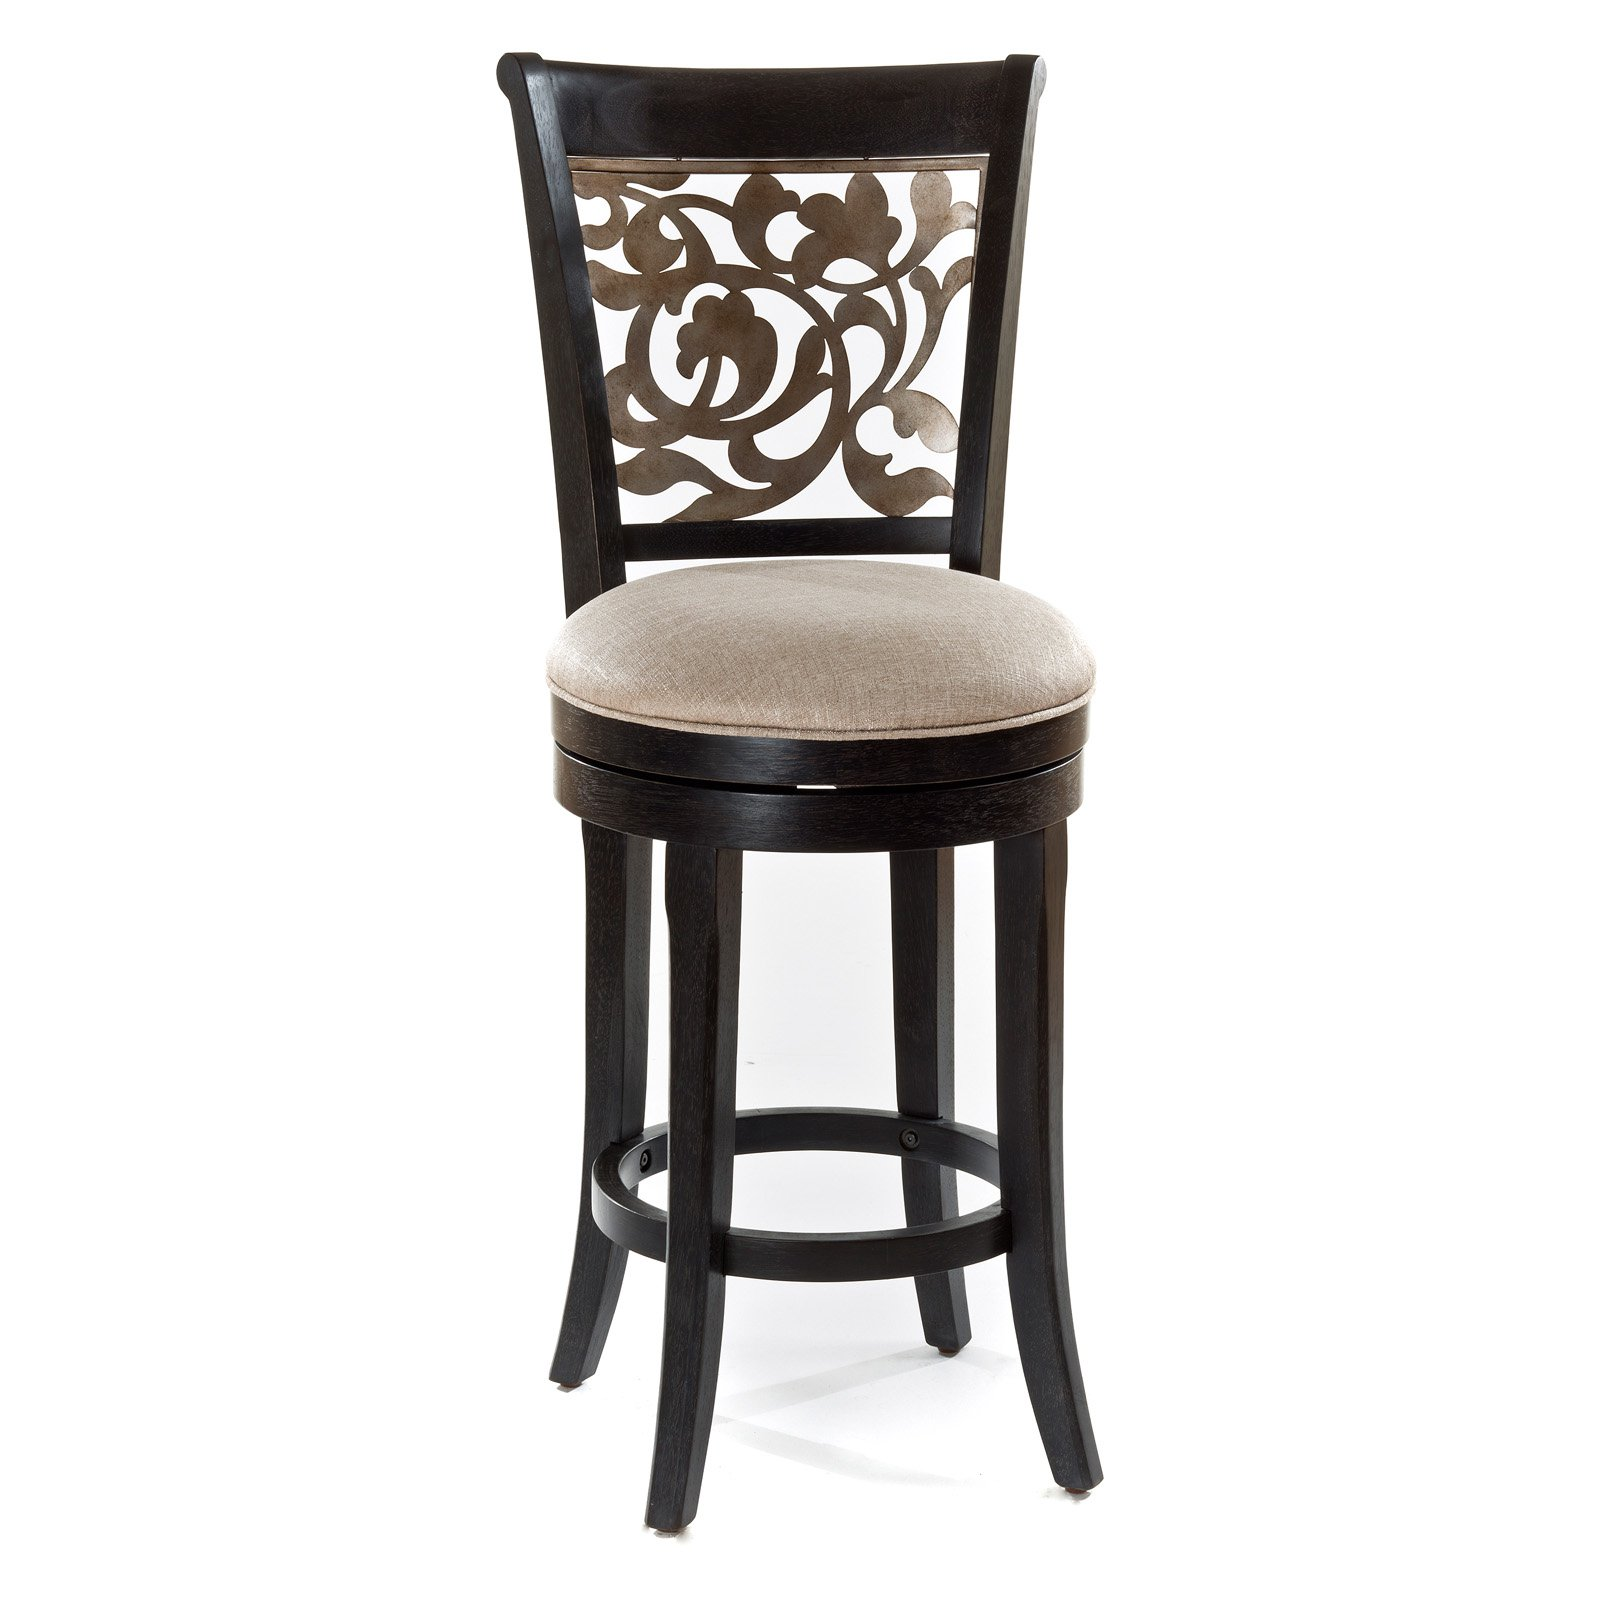 Bennington Swivel Counter Stool, Black Distressed Grey by Hillsdale Furniture LLC